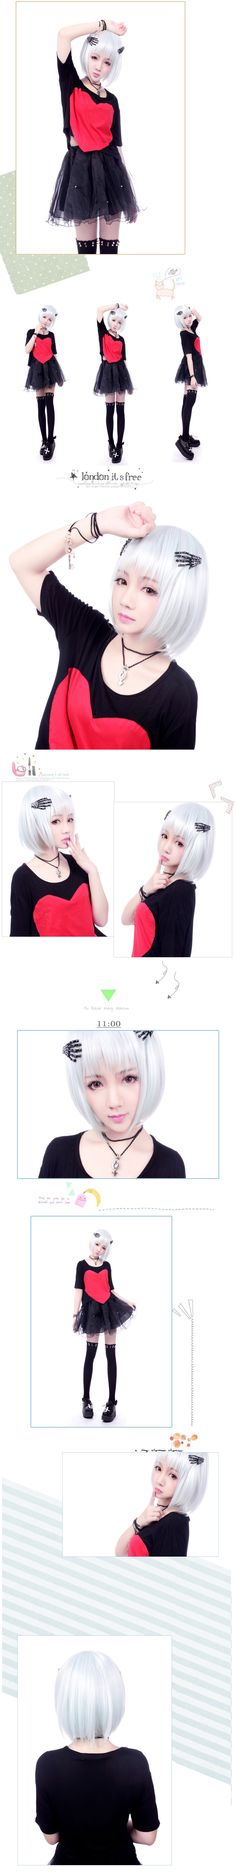 http://item.taobao.com/item.htm?spm=a230r.1.14.95.RunZBk&id=35515012749&initiative_new=1